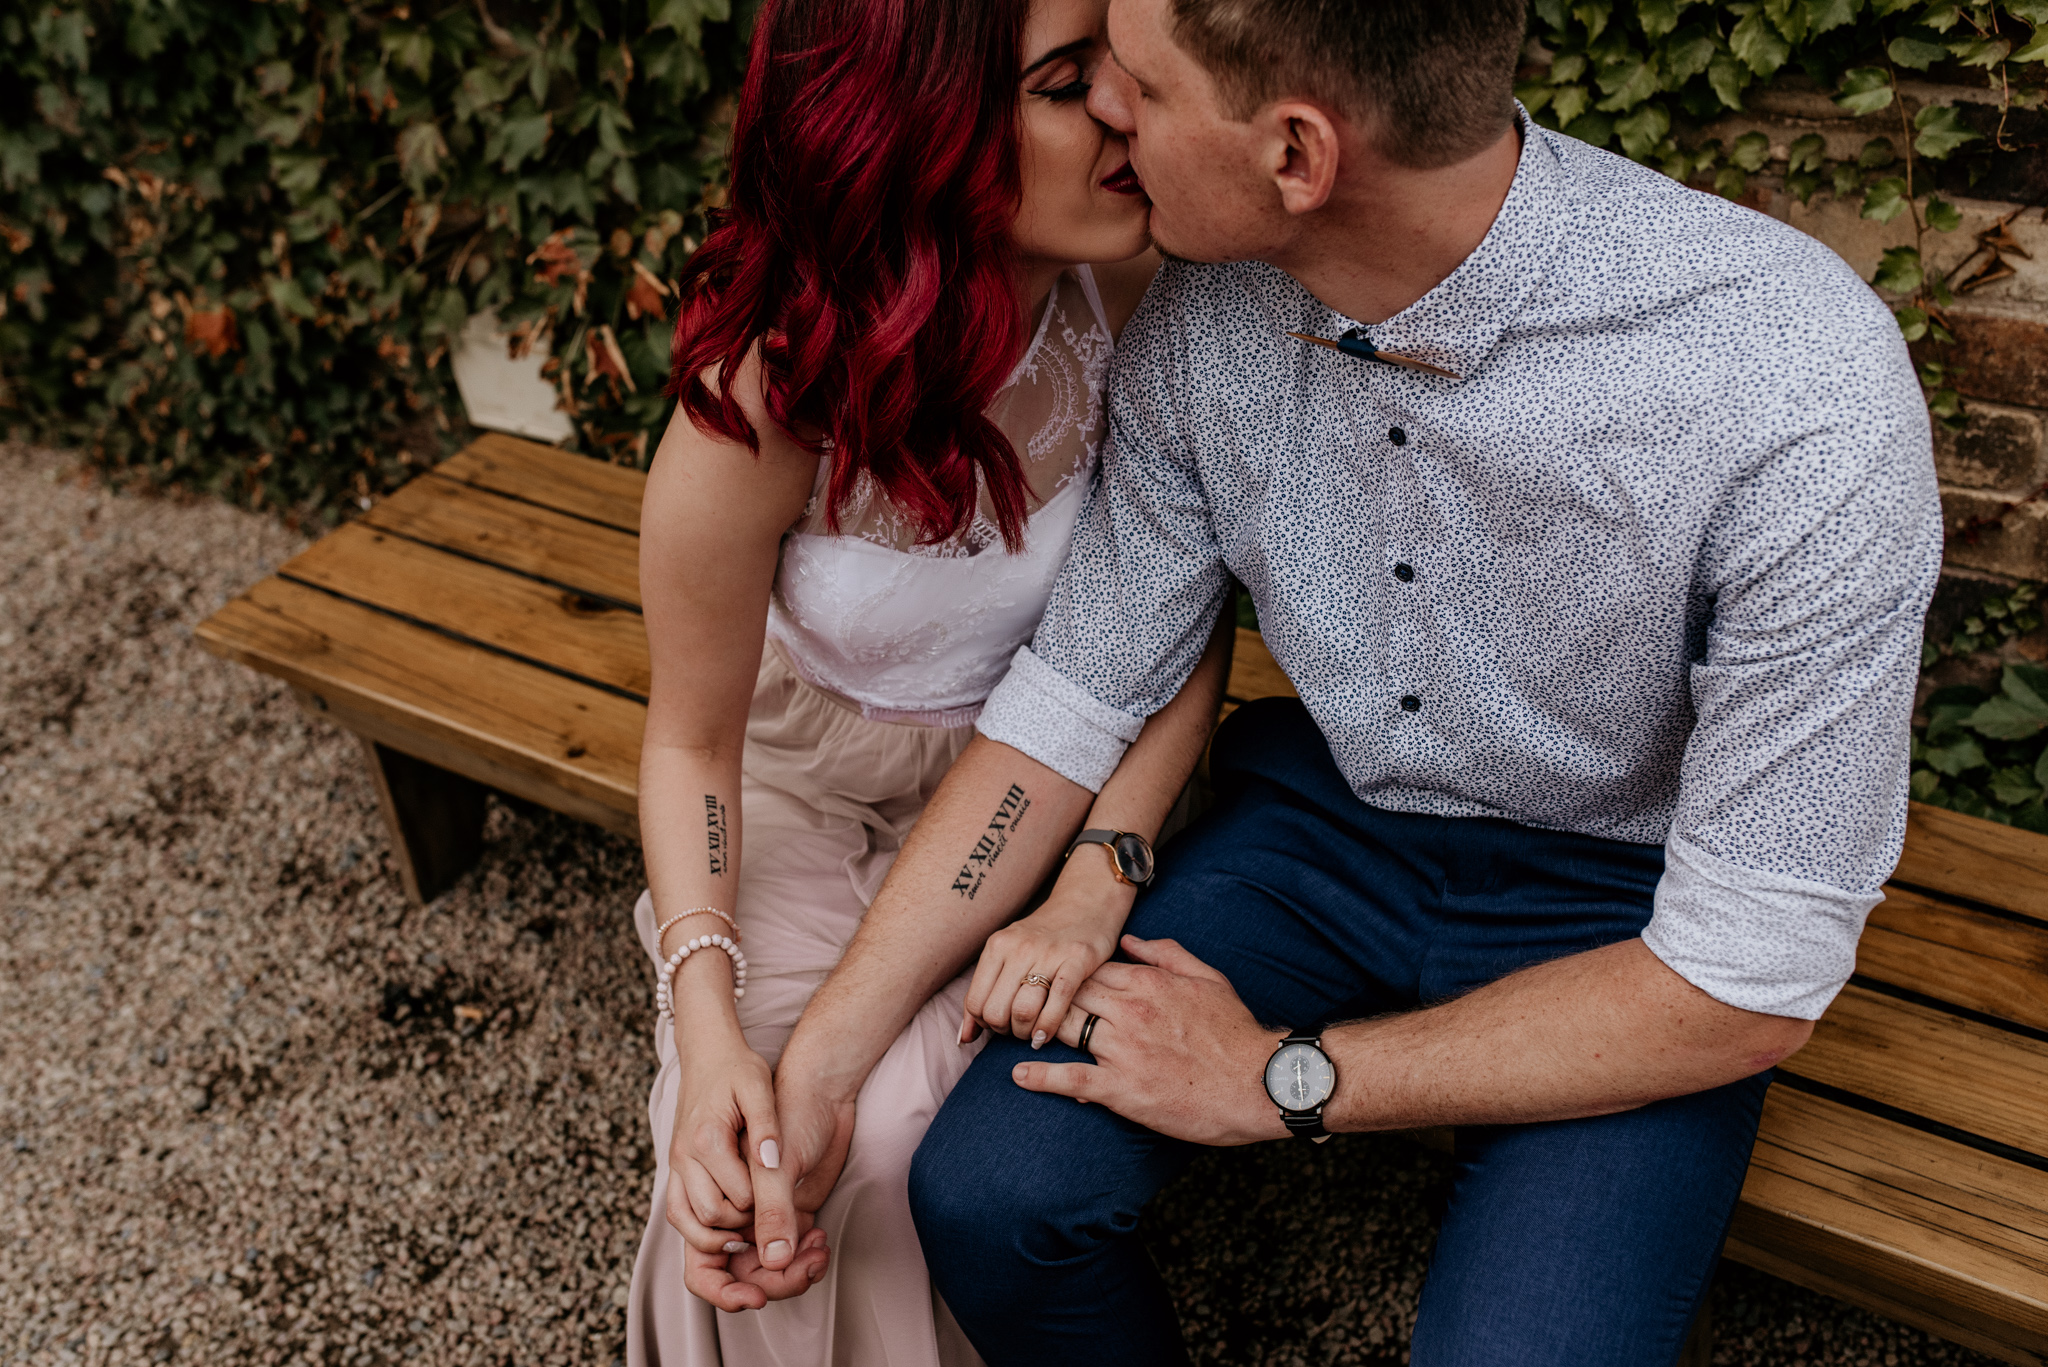 Bride and groom with tattoos on their arms share a kiss after their wedding in Maboneng